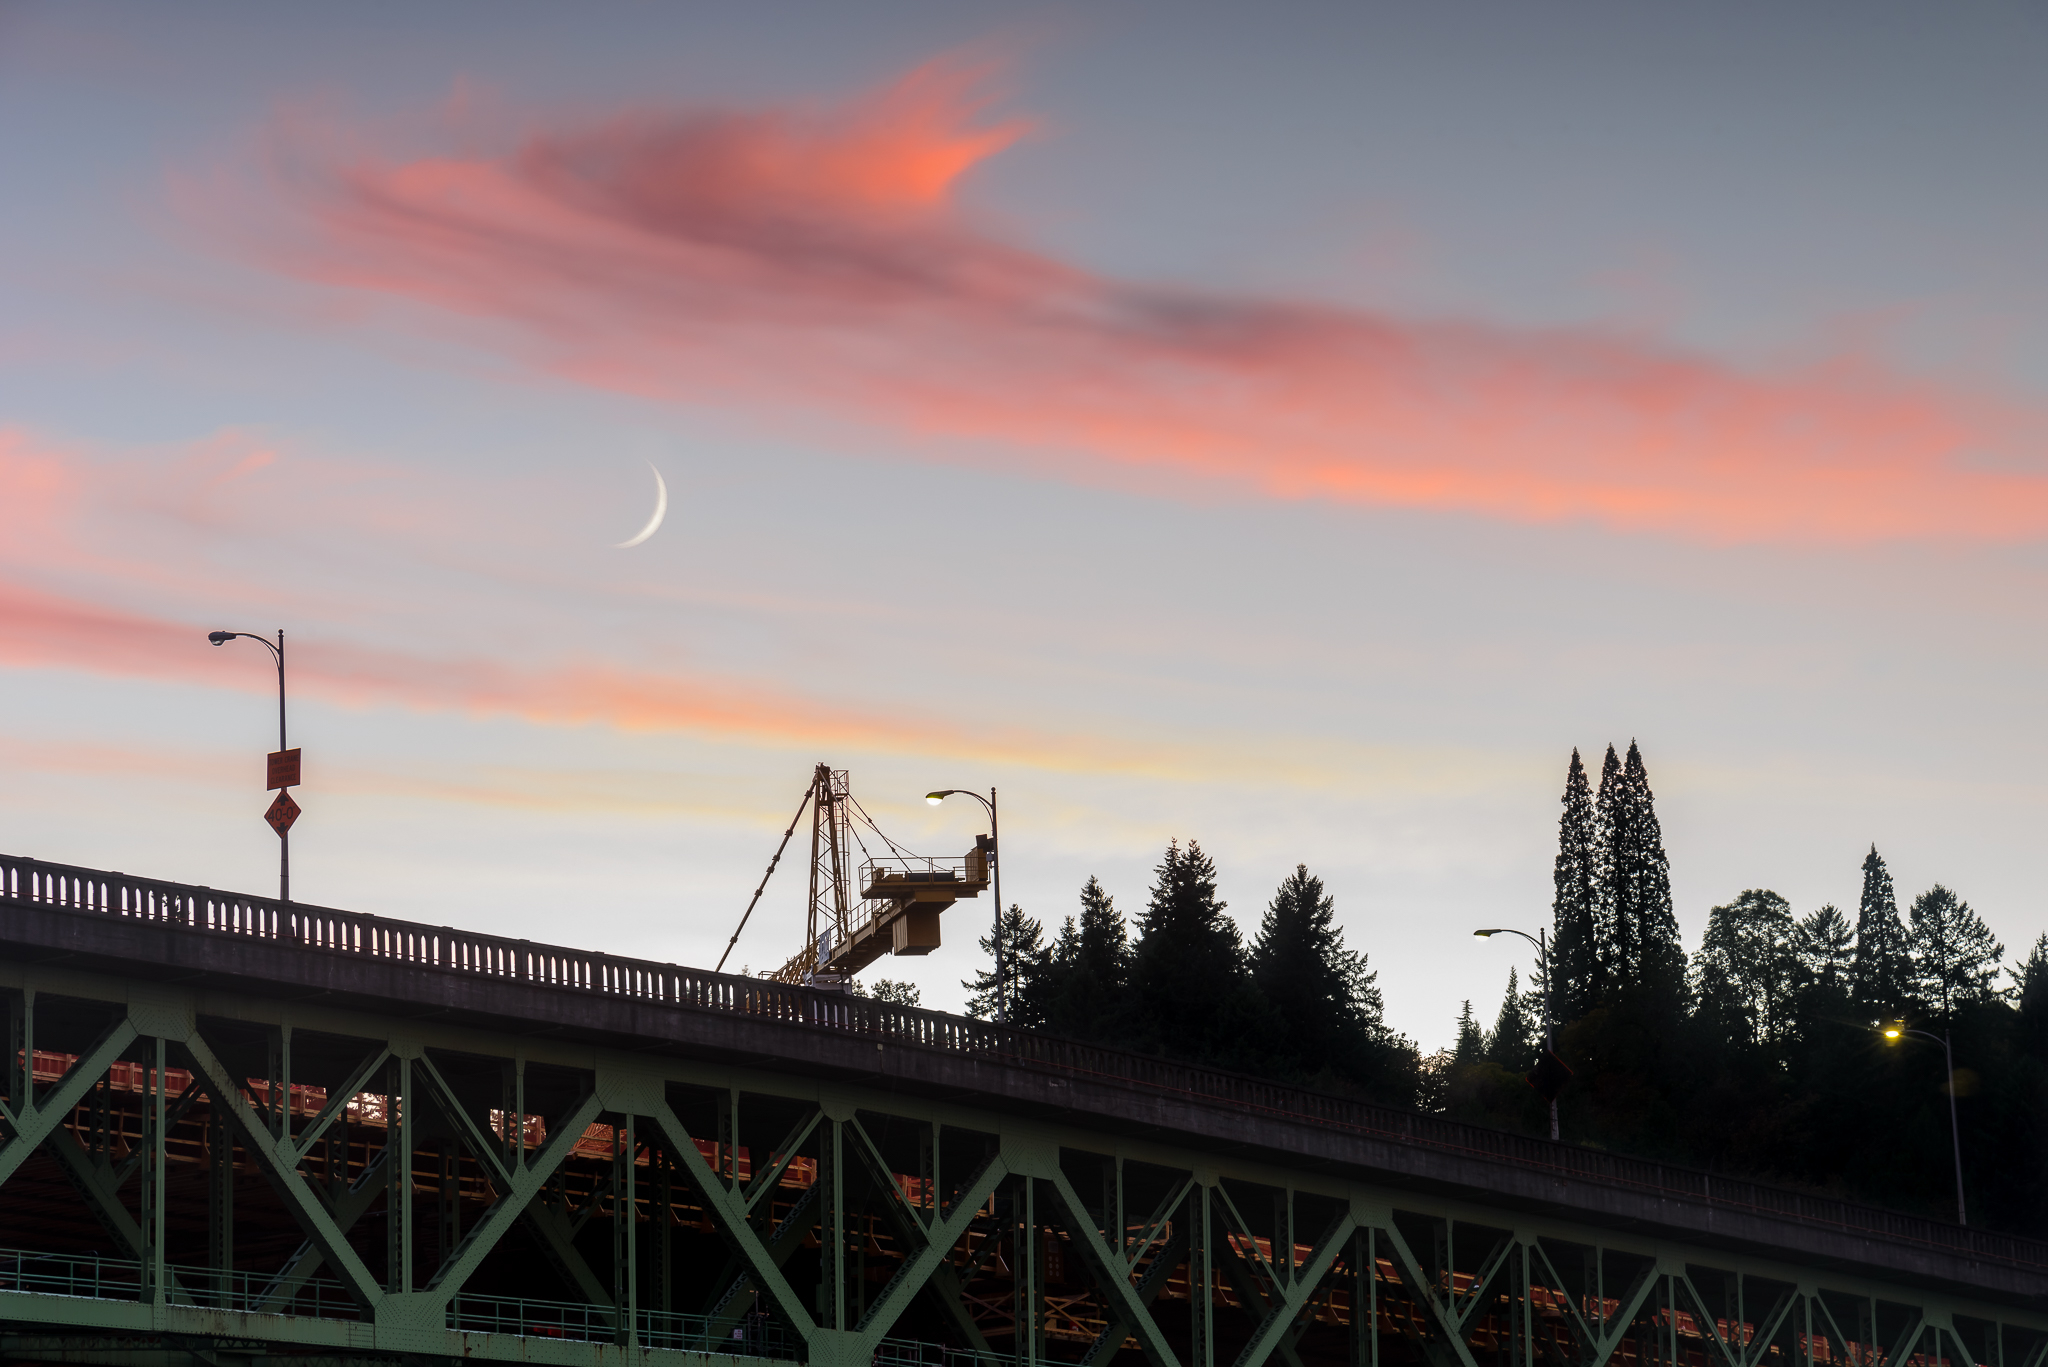 The Sellwood Bridge and a wee sliver of moon welcomed me on my first night in town. Sellwood, Portland.